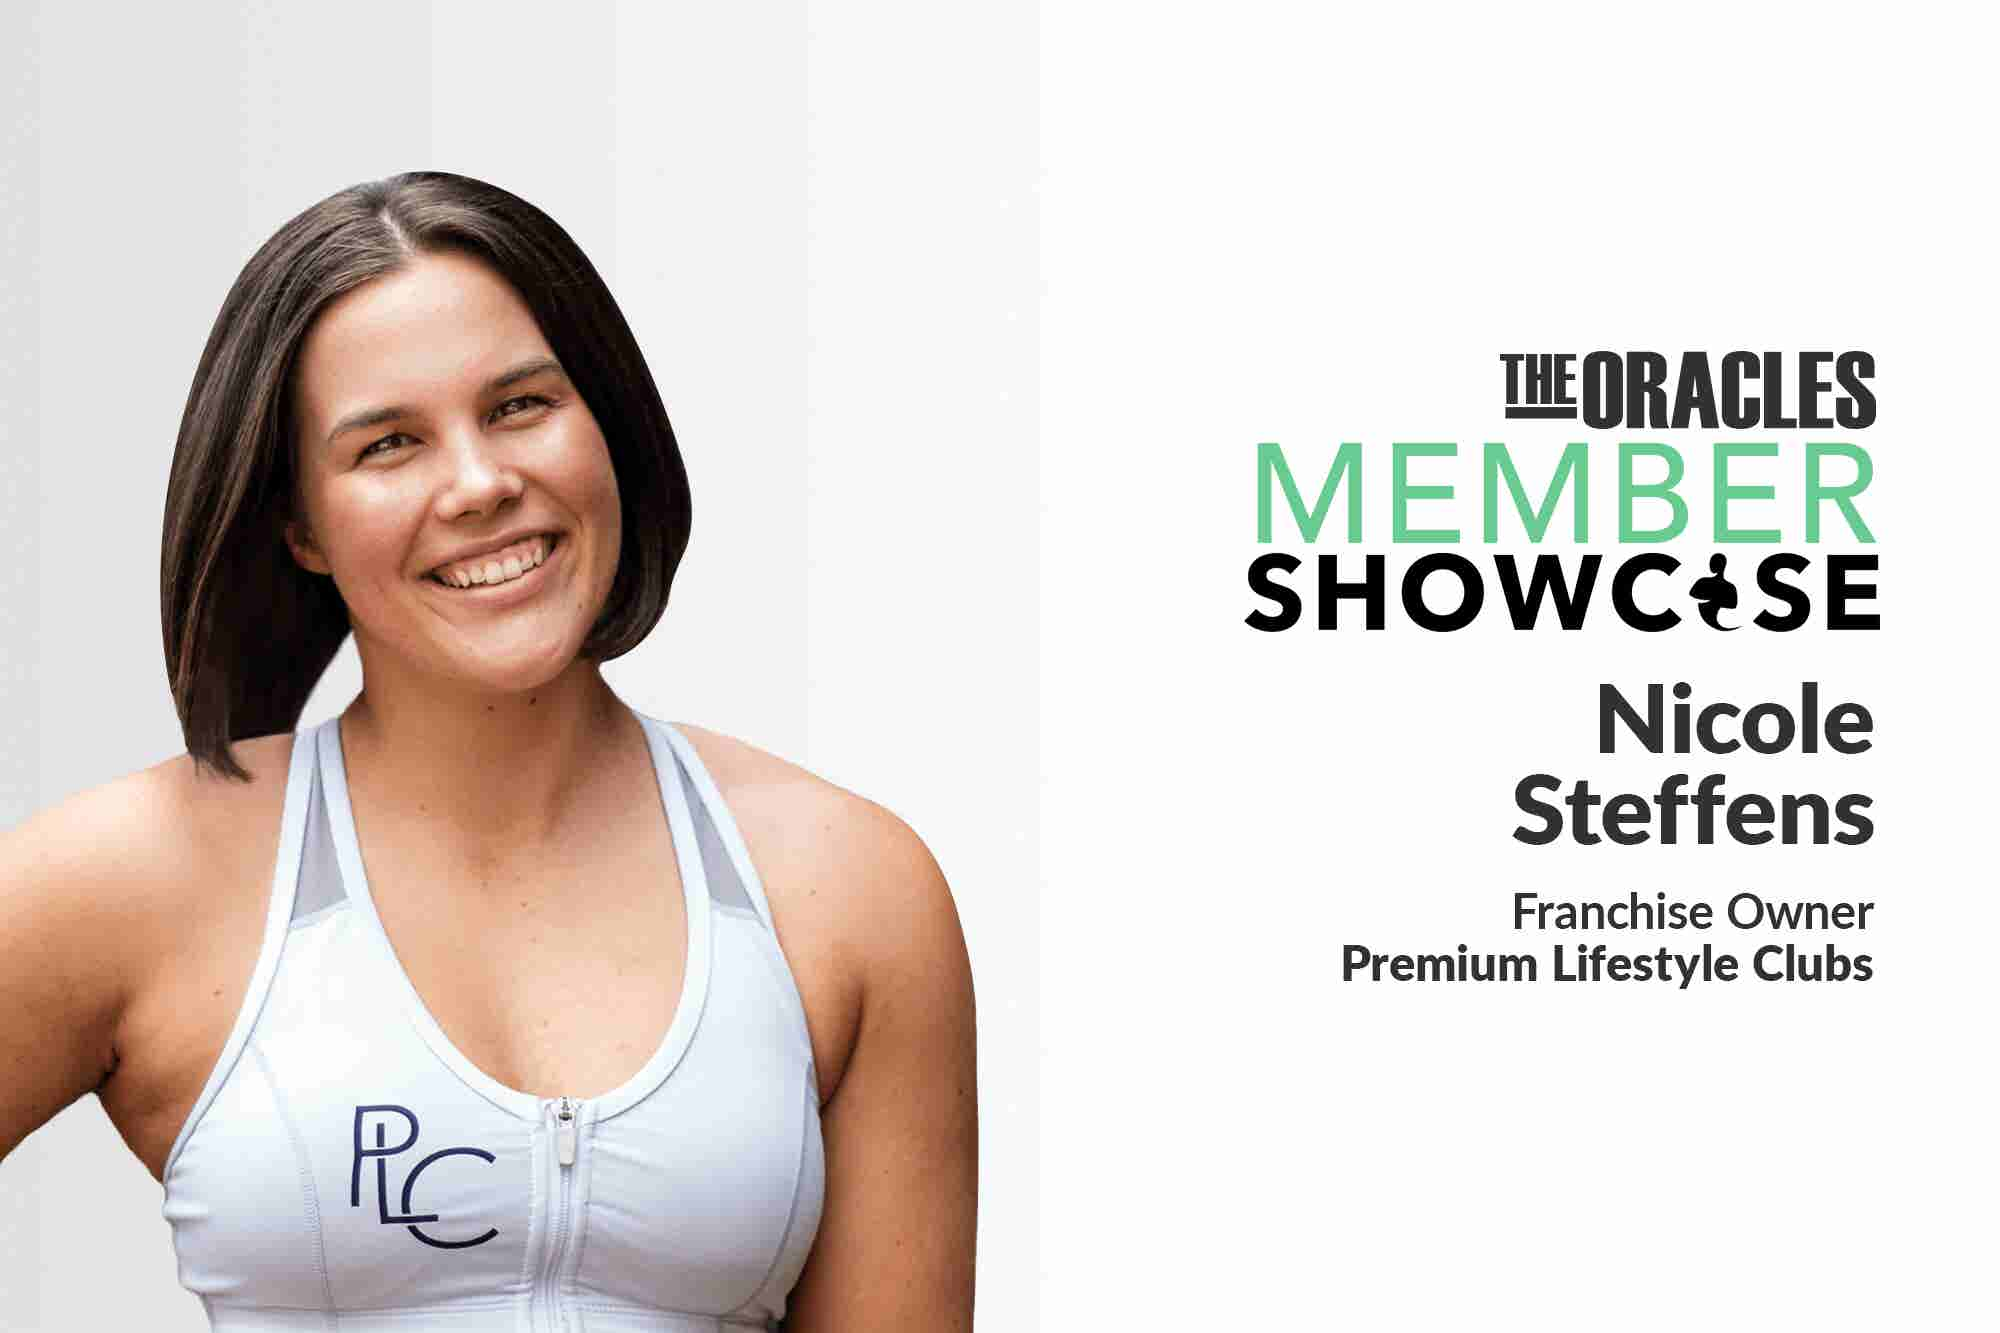 22-Year-Old Gym Owner Nicole Steffens Shares Her Morning Routine and Other Life Lessons